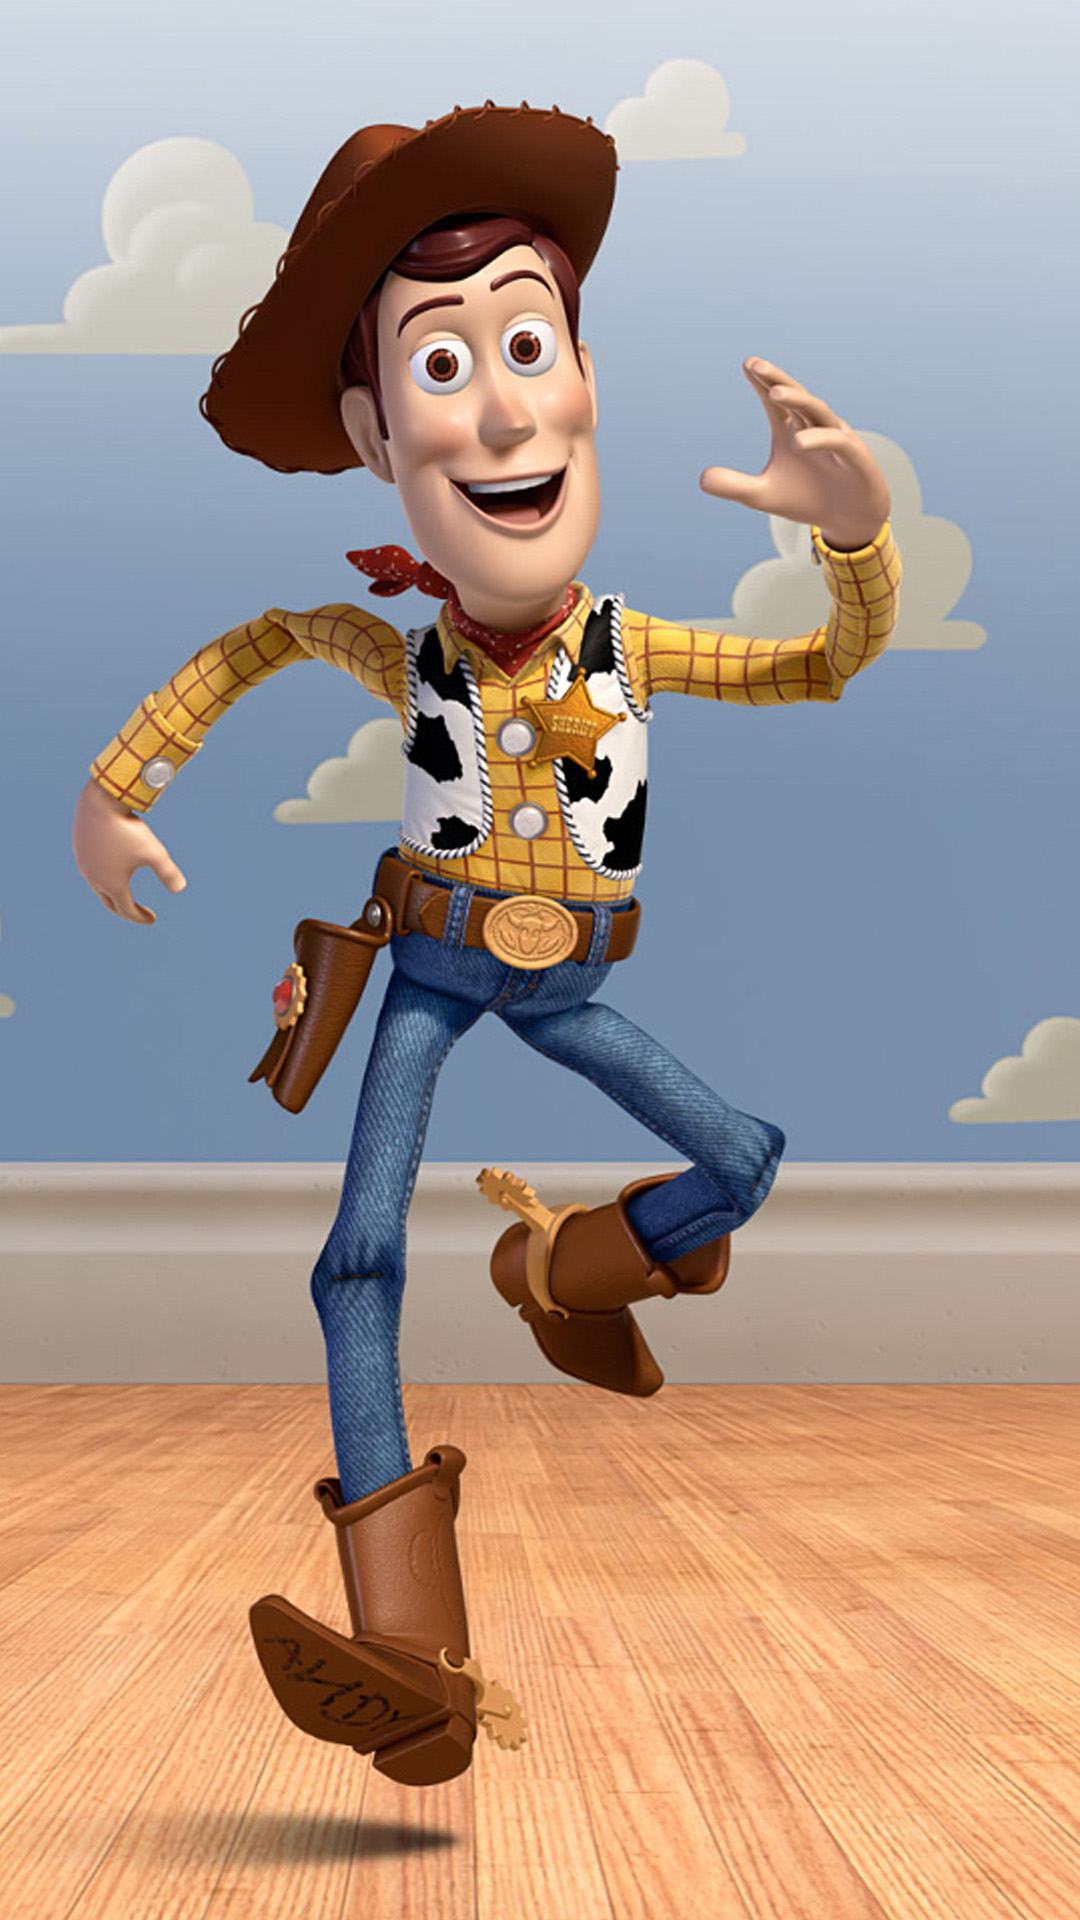 Wallpaper iphone toy story - Toy Story Woody Hd Wallpaper Iphone 6 Plus Wallpapersmobile Net